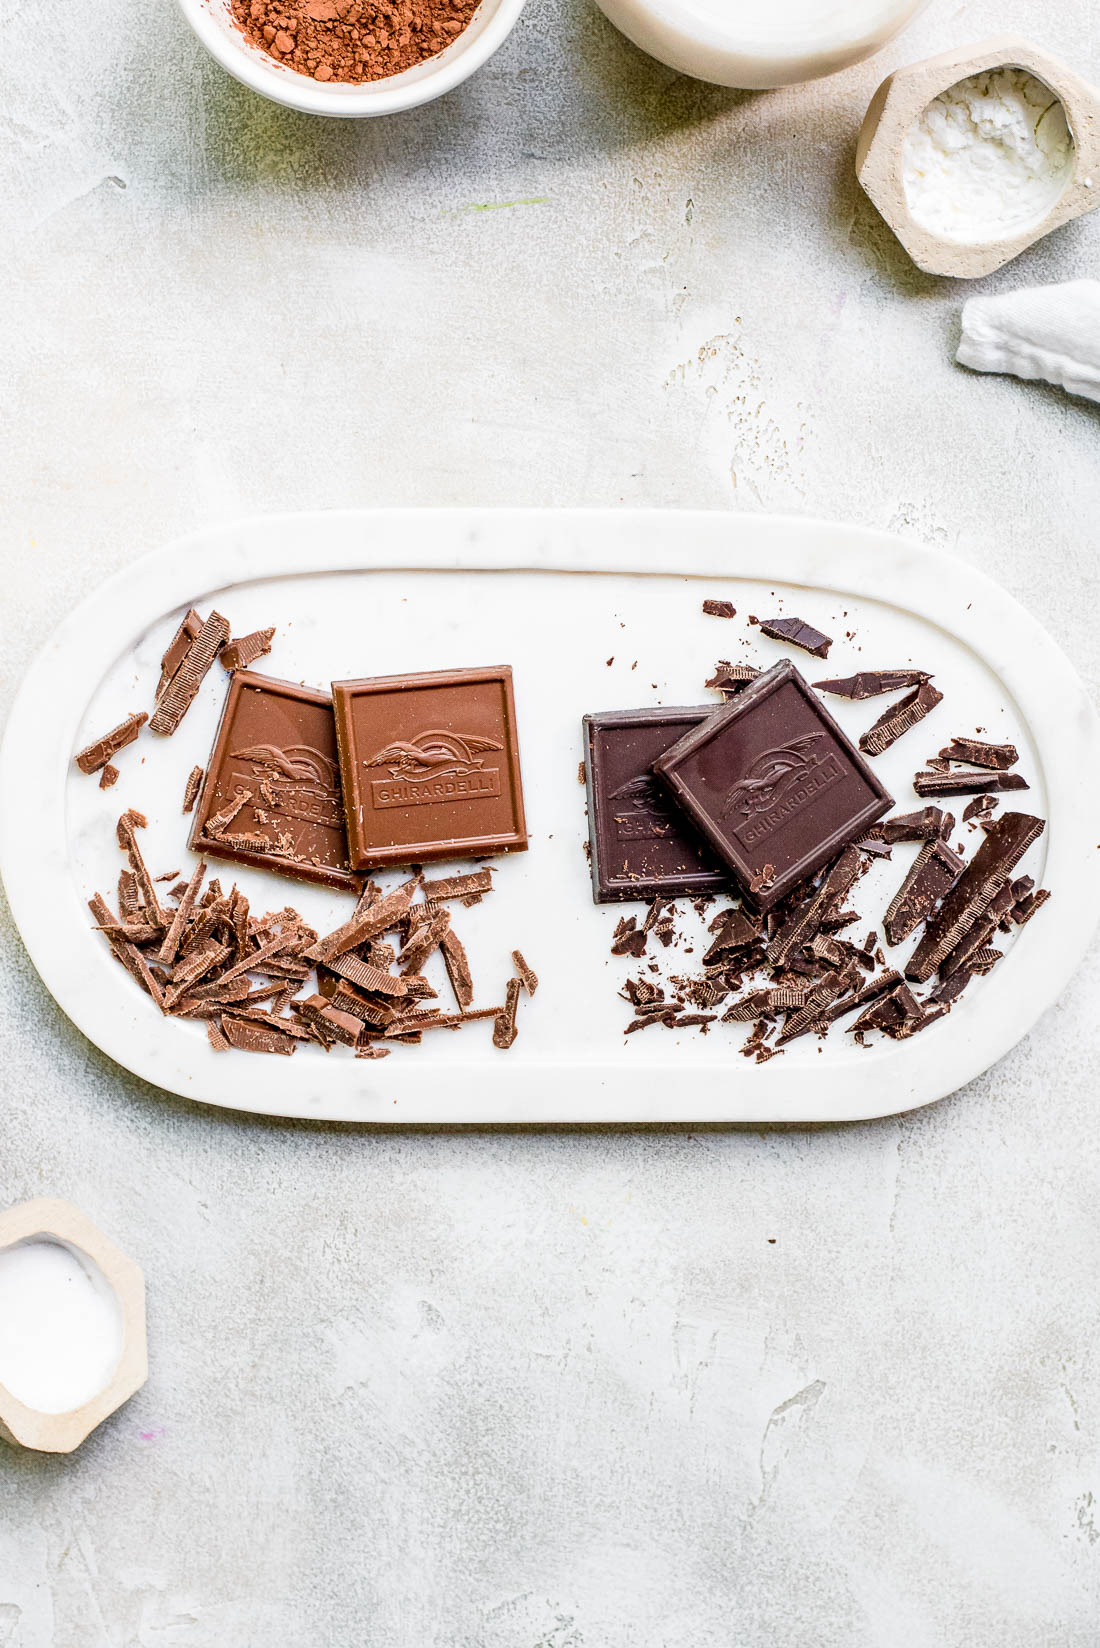 milk chocolate and dark chocolate pieces on tray